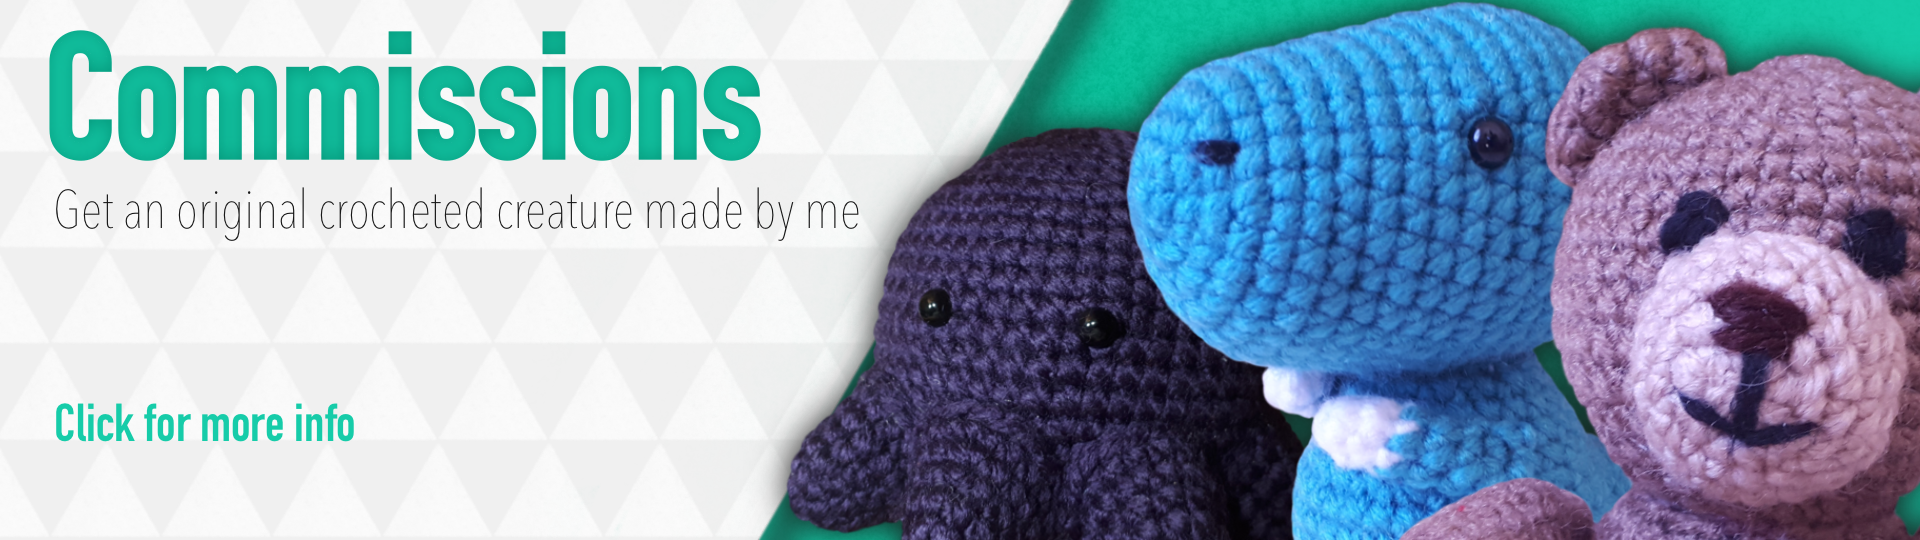 Commissions. Get an original crocheted creature made by me. Click for more info.